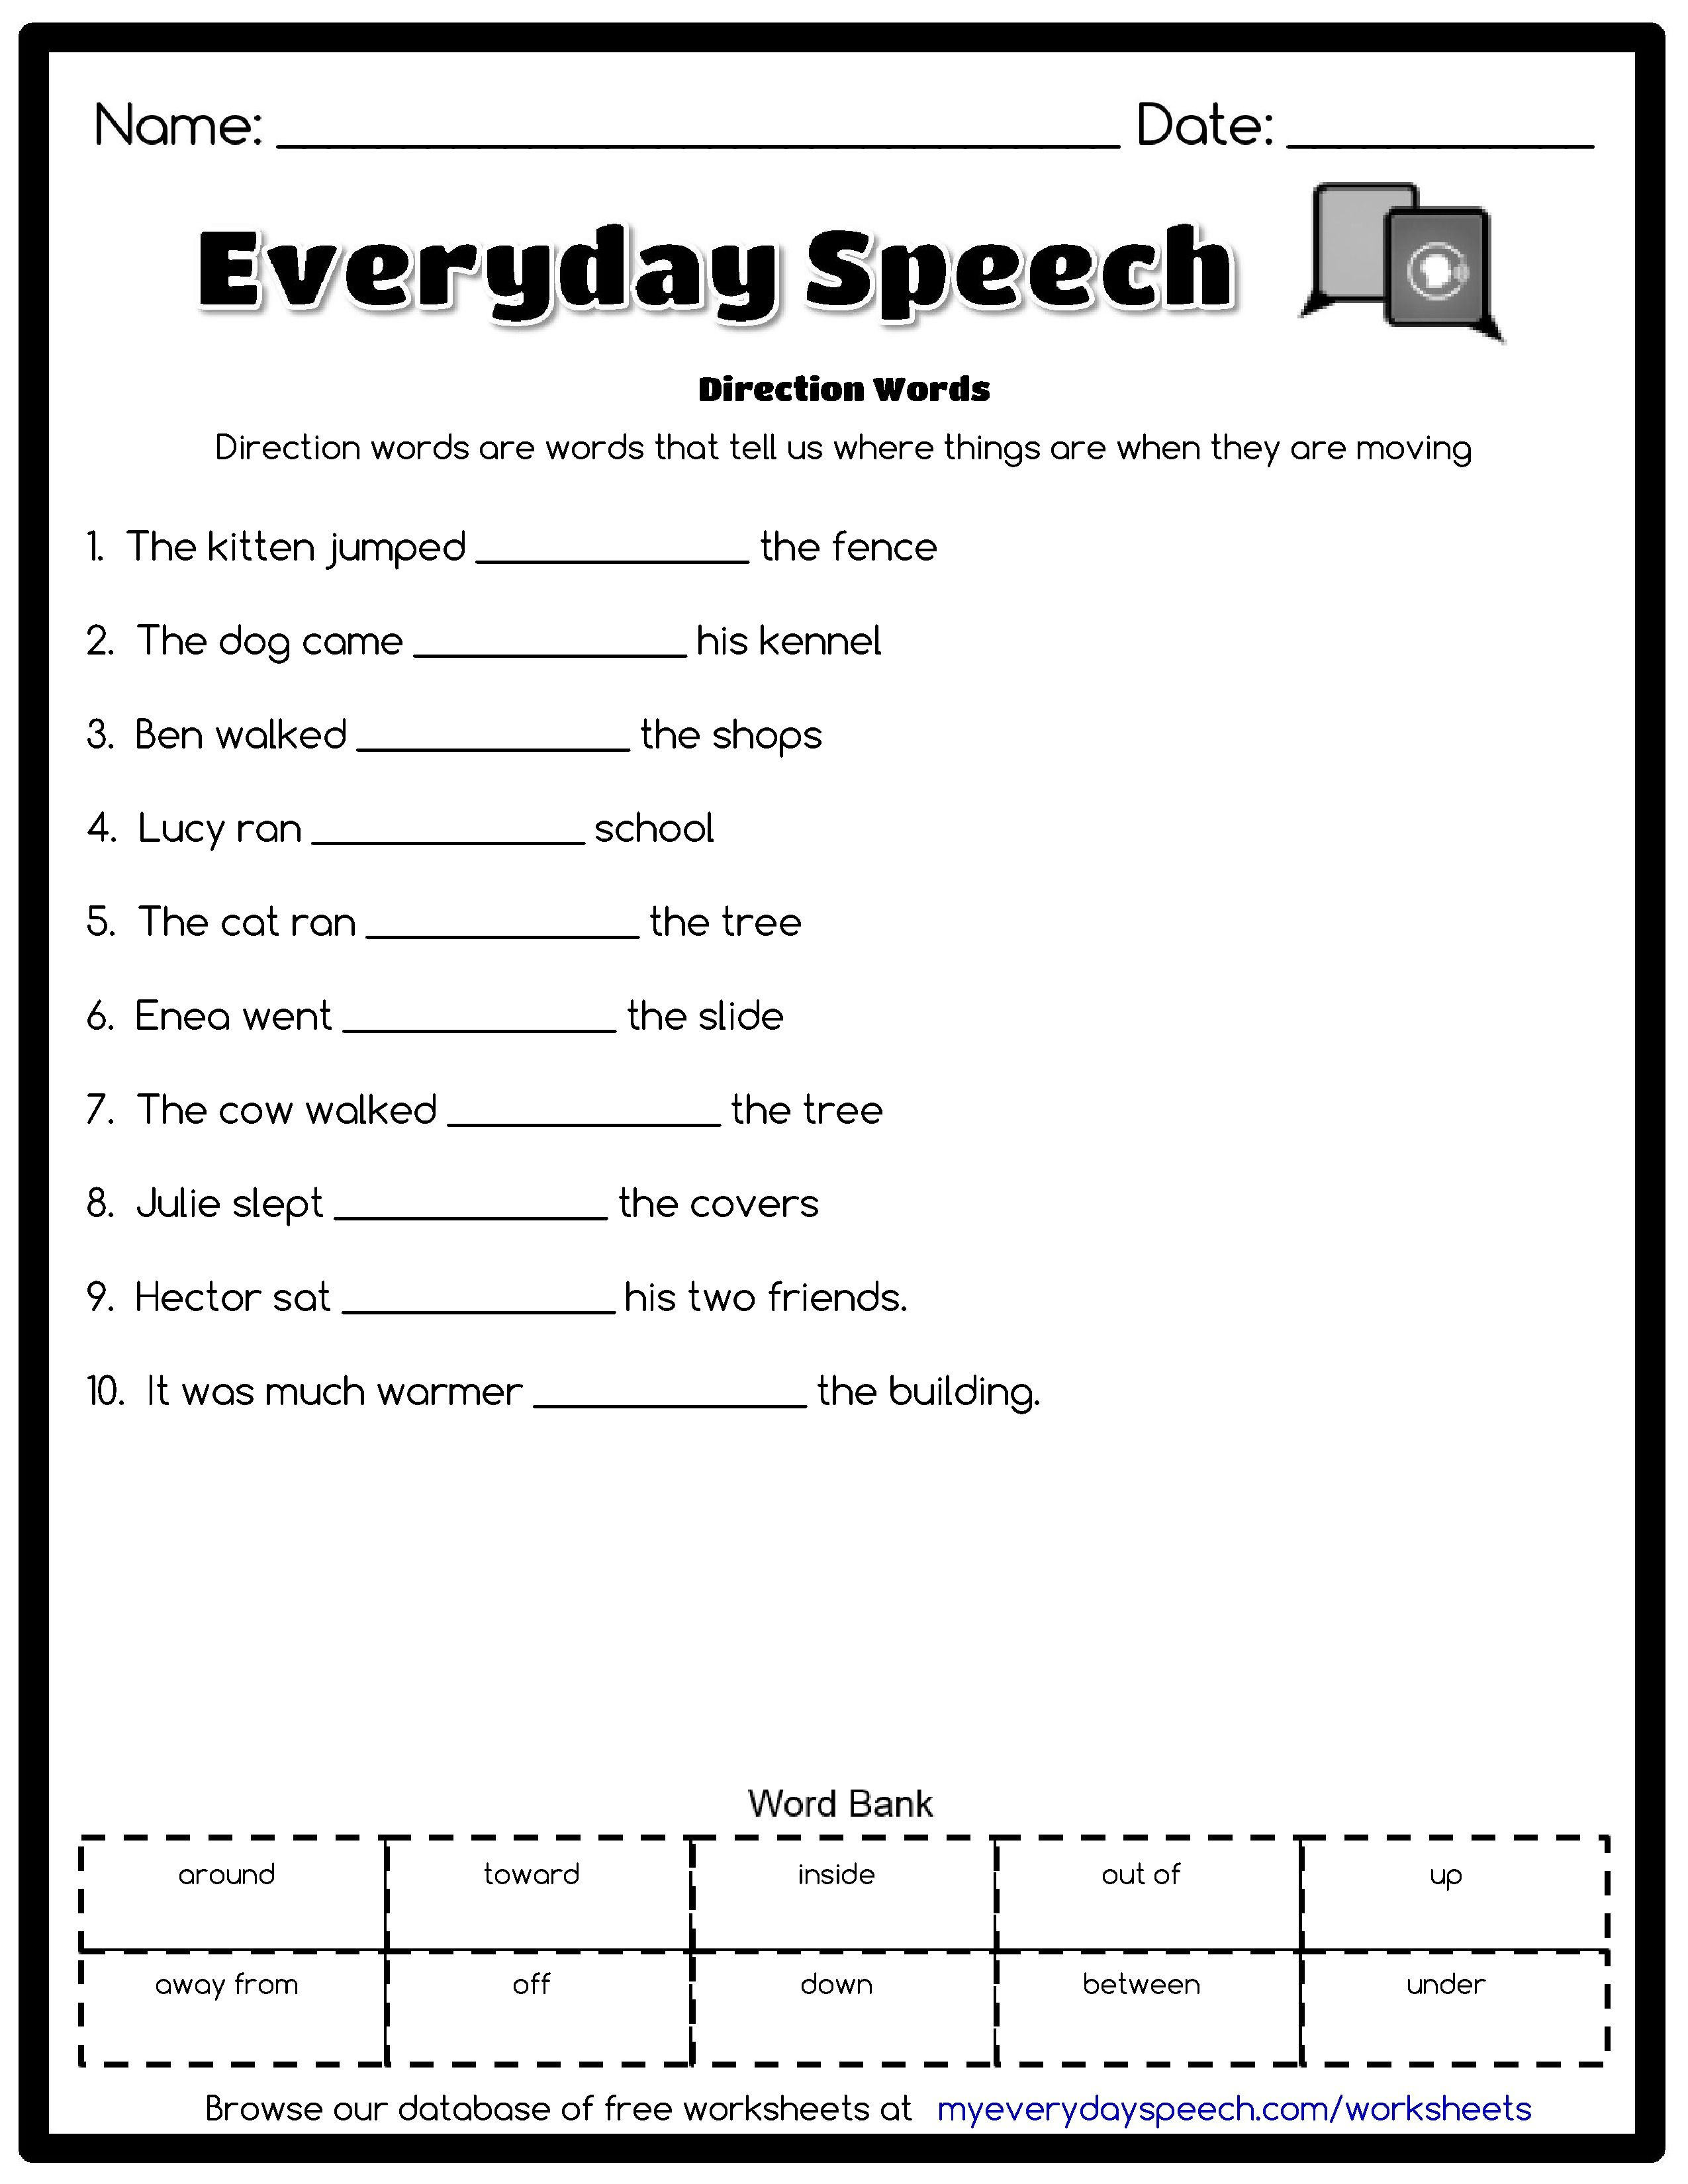 hight resolution of Check out the worksheet I just made using Everyday Speech's worksheet  creator! Direction Words - Direction words are wor…   Speech therapy  worksheets